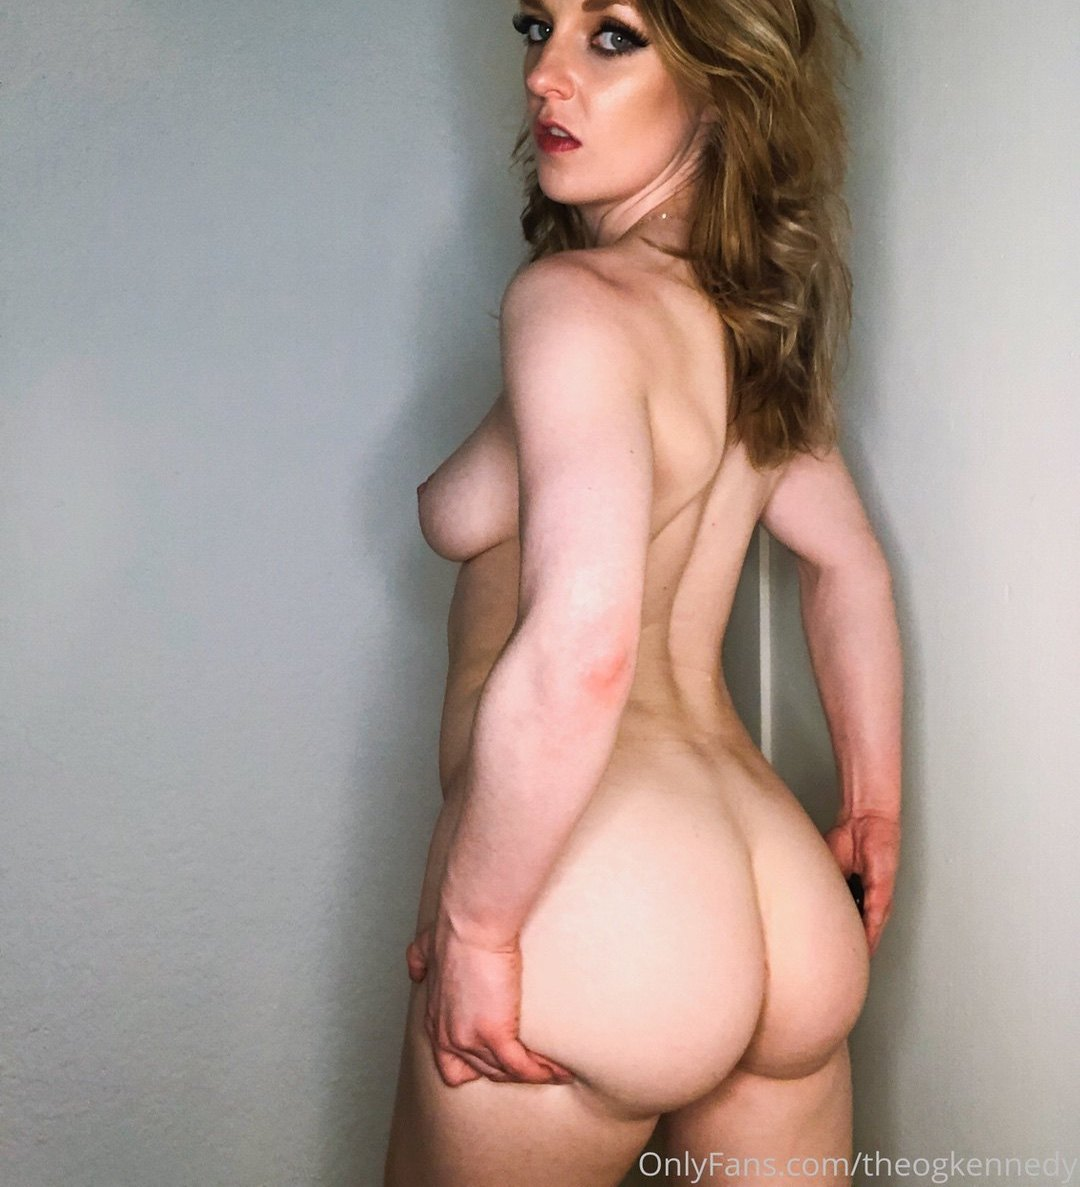 Kate Kennedy Theogkennedy Onlyfans Nudes Leaks 0006